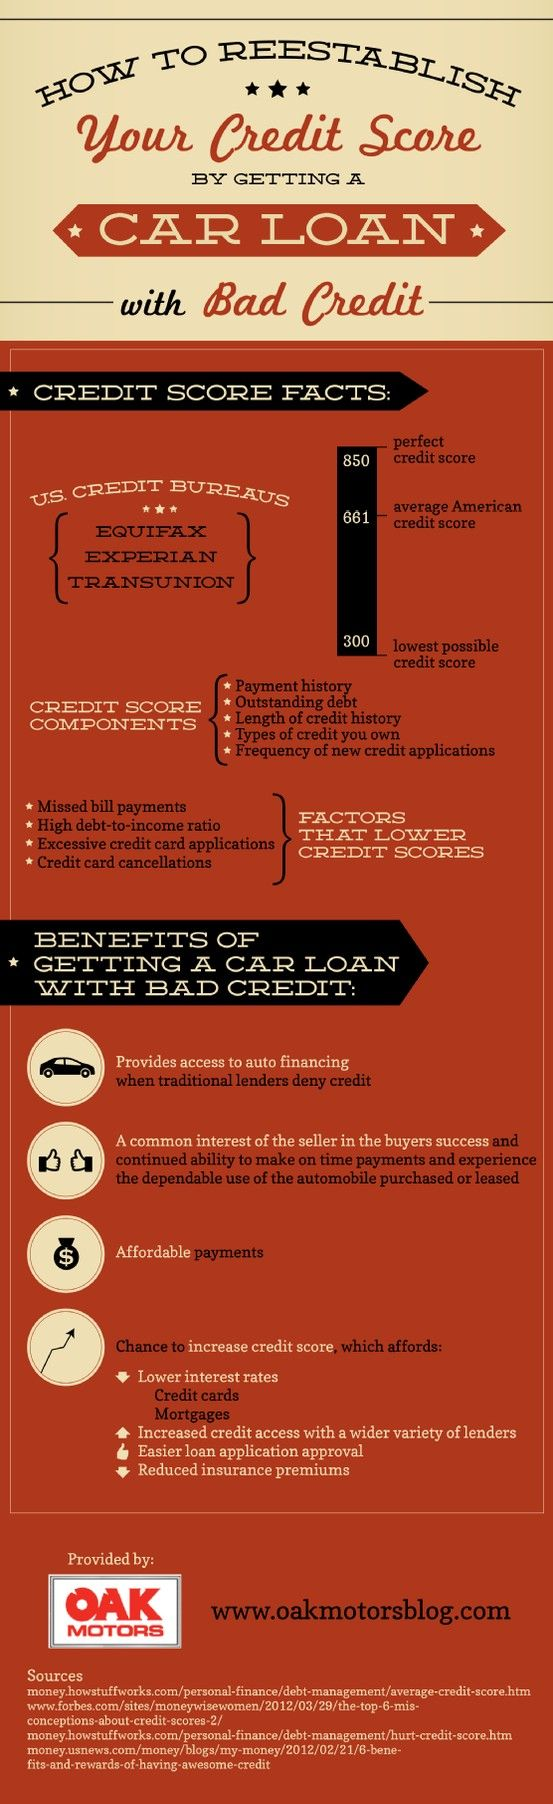 67 best images about automotive infographics on pinterest average credit score cars and used cars. Black Bedroom Furniture Sets. Home Design Ideas